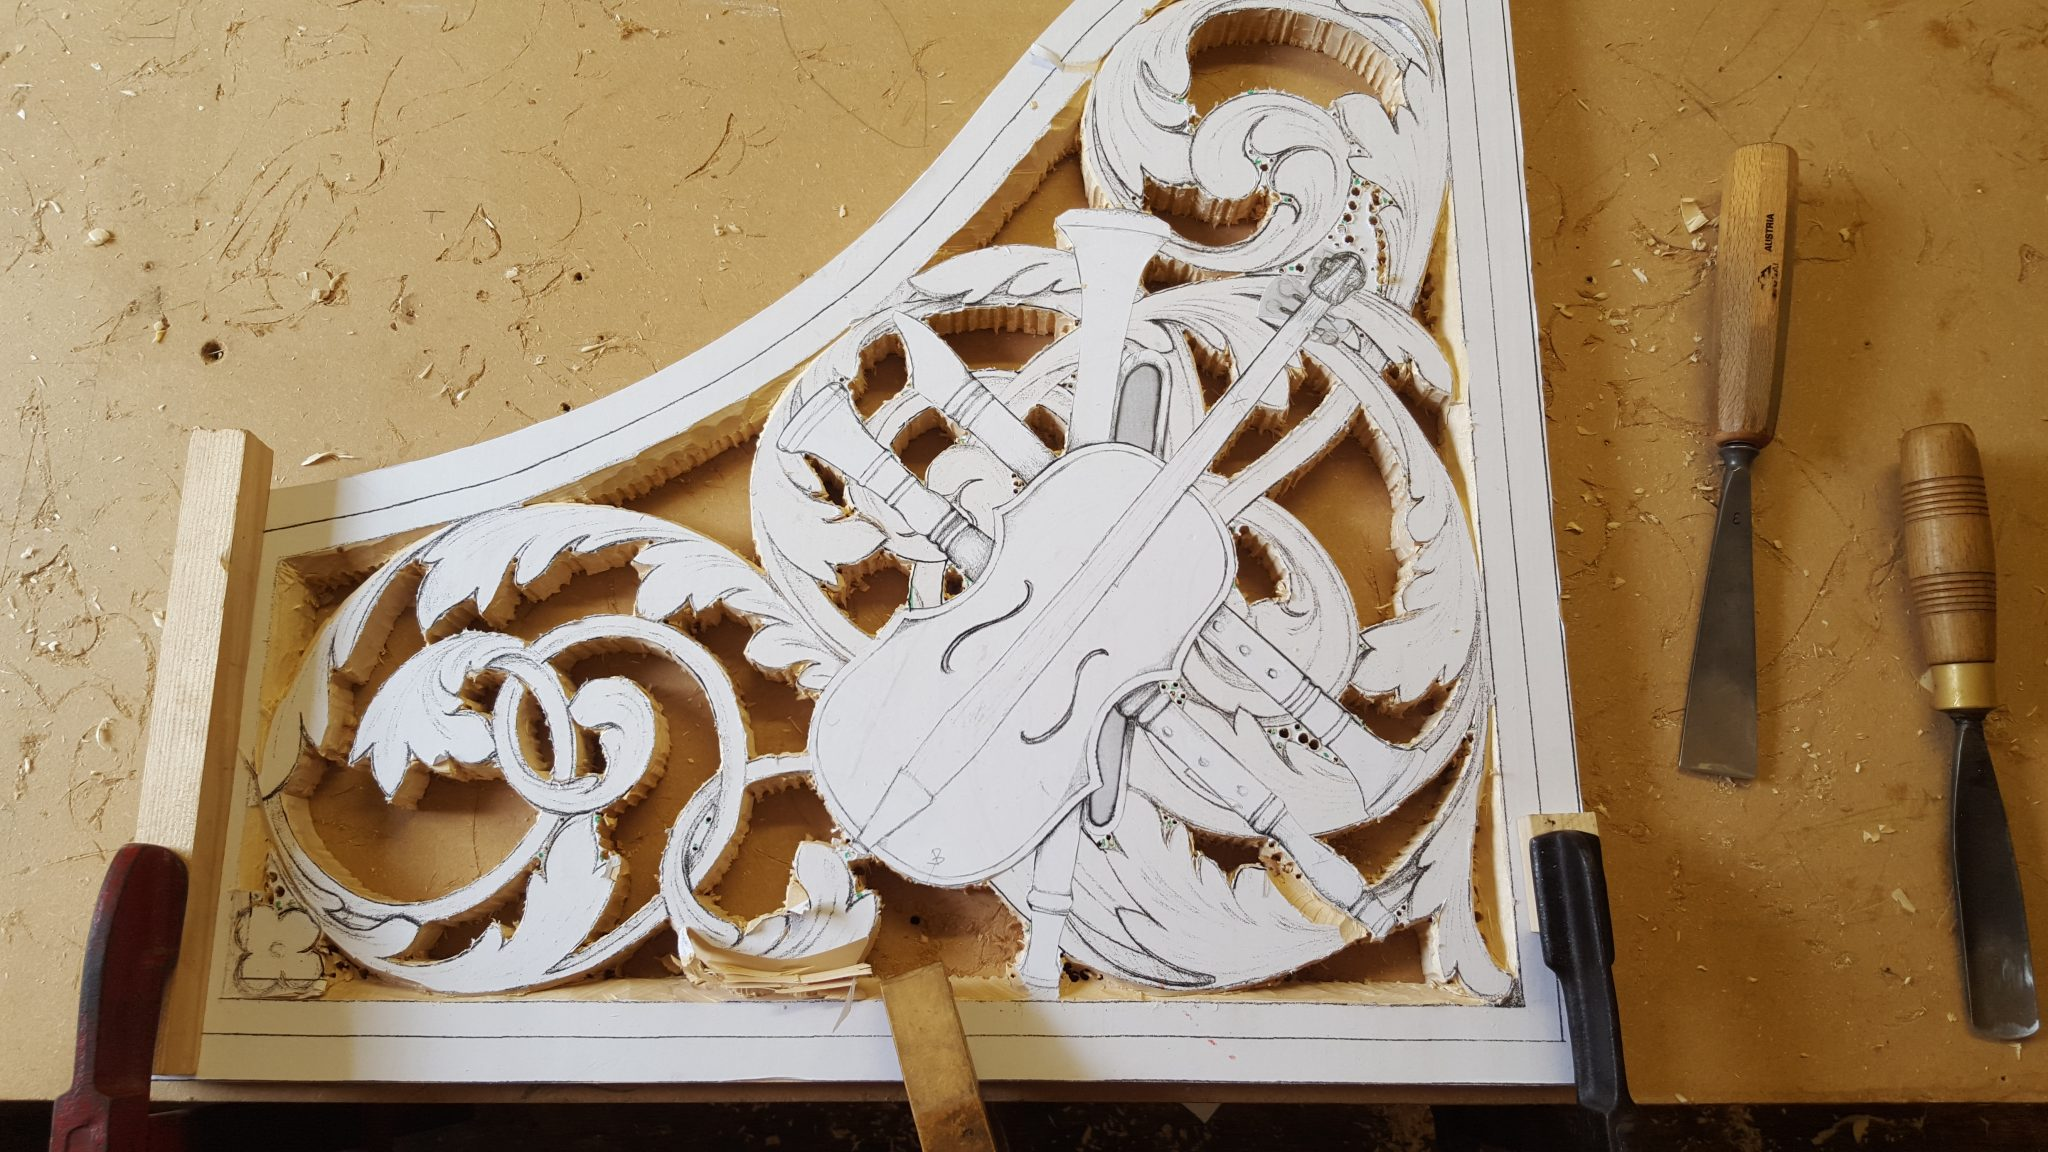 lime wood pipe shades carvings with trophy panel violin, drawings by Laurent Robert Woodcarver